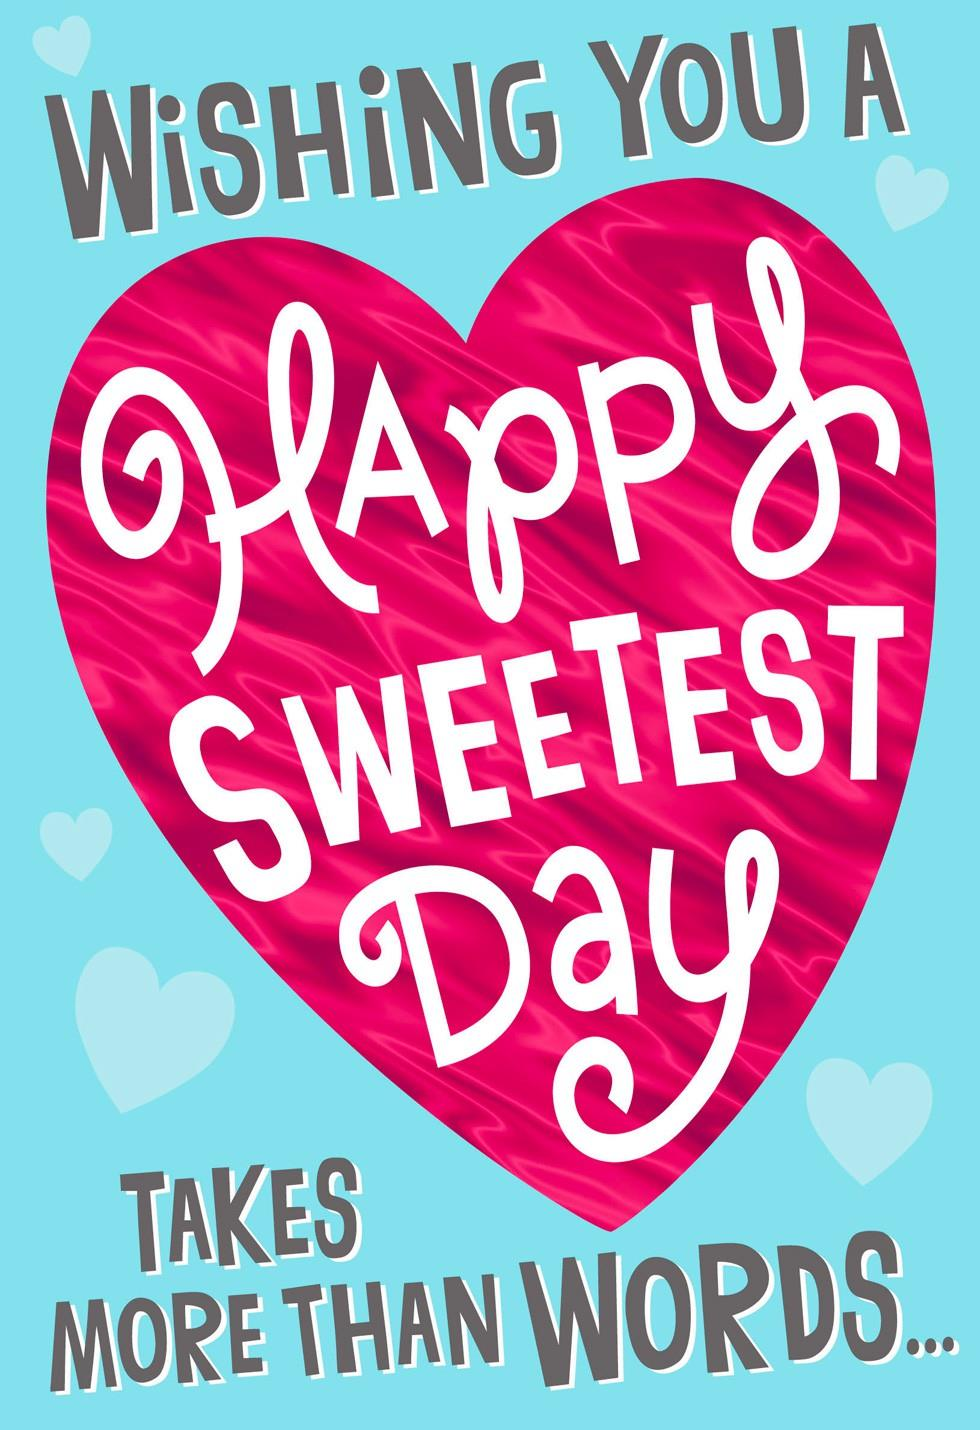 KITTENS Funny Sweetest Day Card Greeting Cards Hallmark